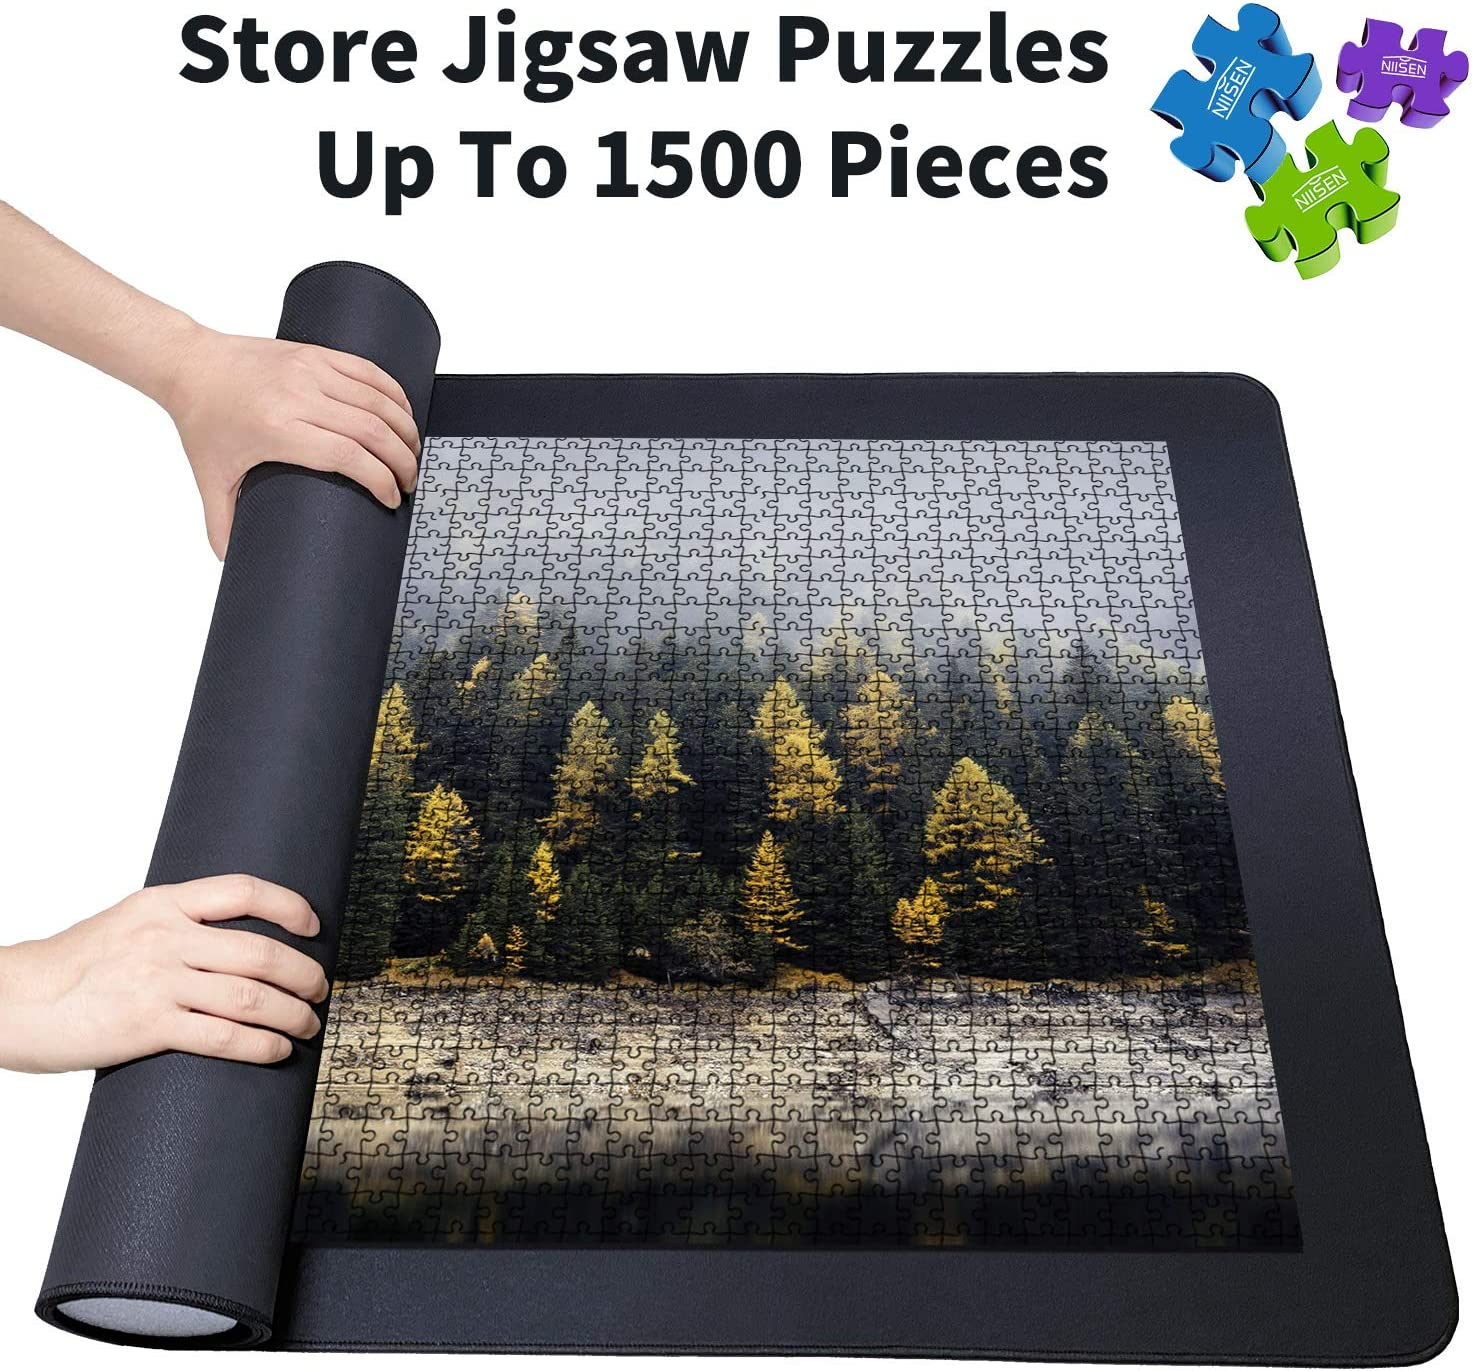 Jigsaw Puzzle Mat and Bag Puzzle Saver Premium Puzzle Mat Roll Up Smooth Fabric Top and Non-Slip Rubber Bottom Foam Roller and Dual Material Mat Fits 1500 Piece Puzzles 26 x 47